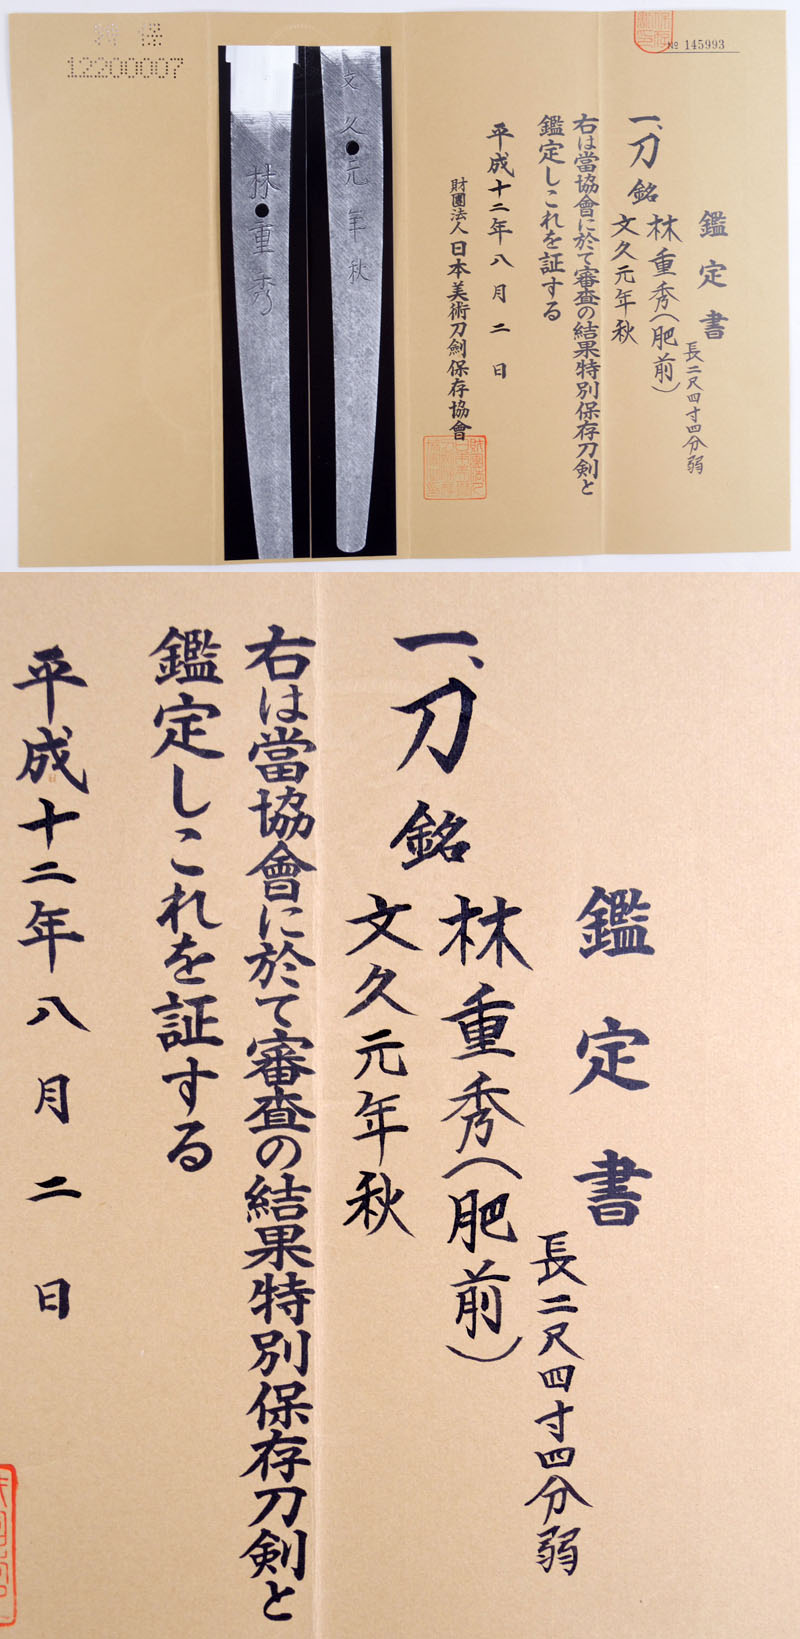 林重秀(肥前) Picture of Certificate